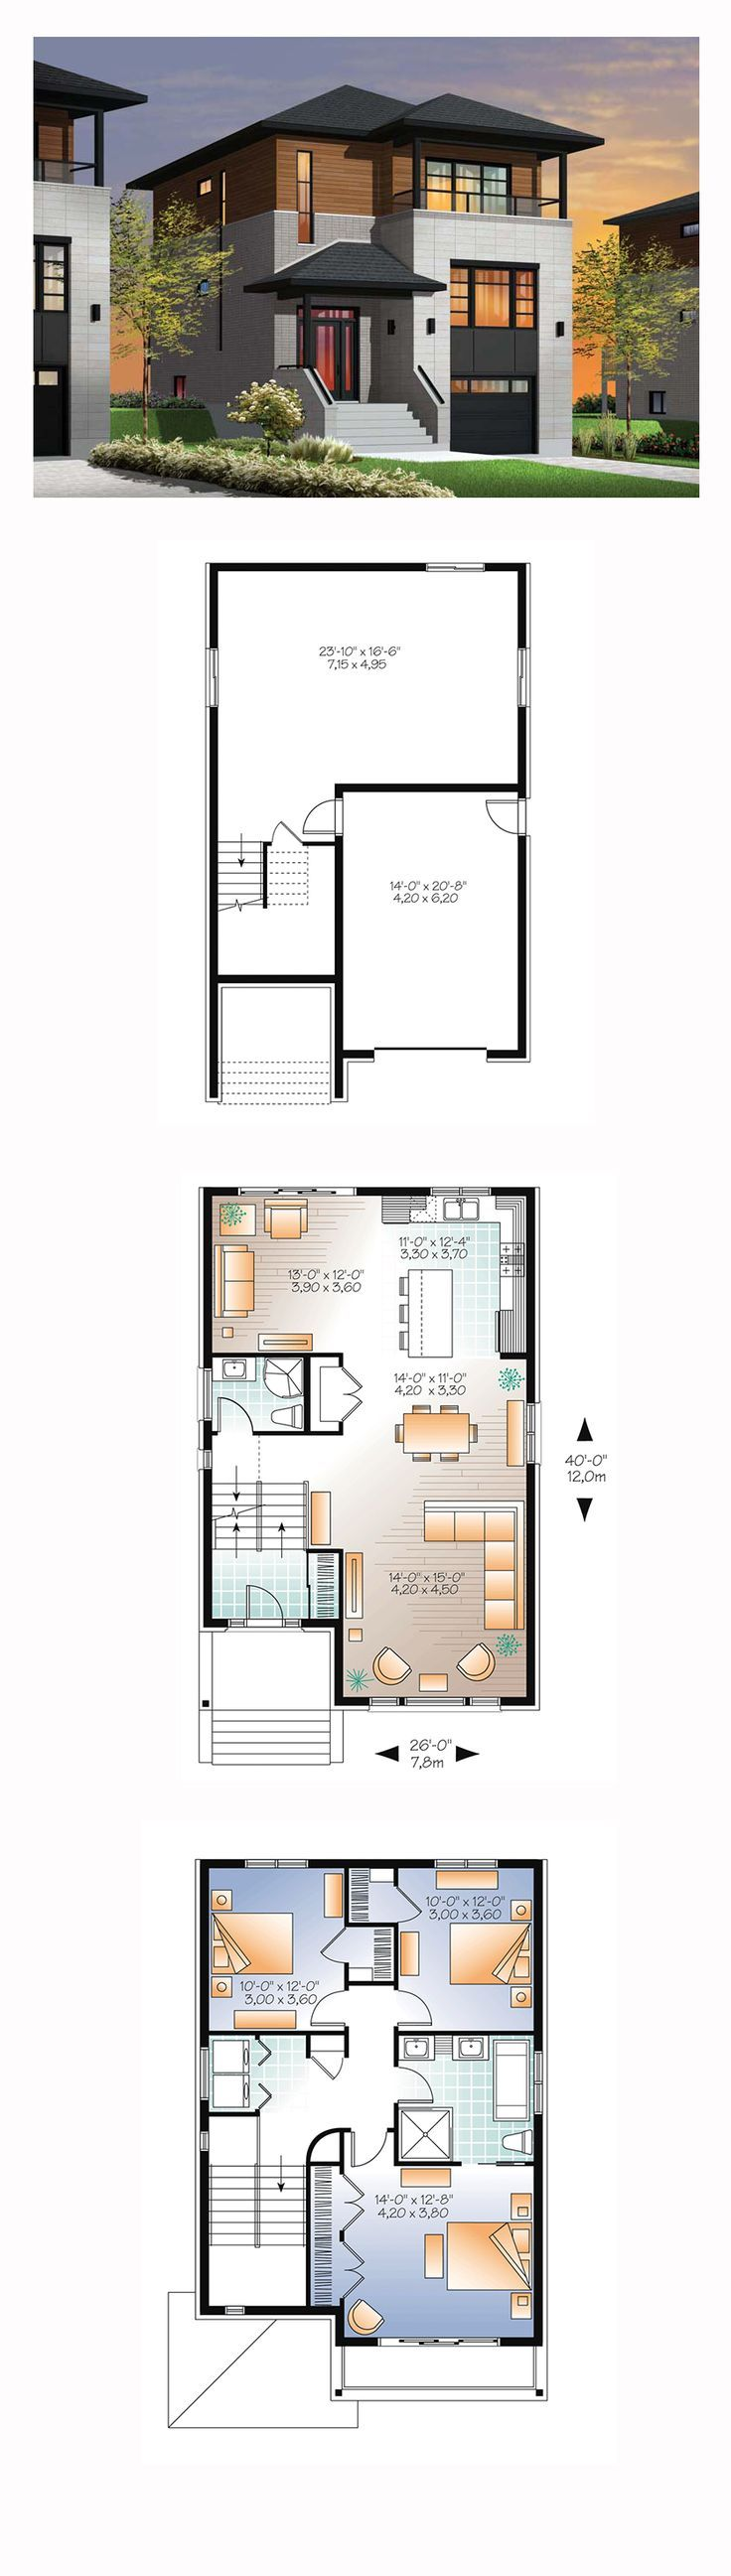 sims 4 floor plans. Pin by mustafa on Ev planlar  Pinterest House Sims and Architecture